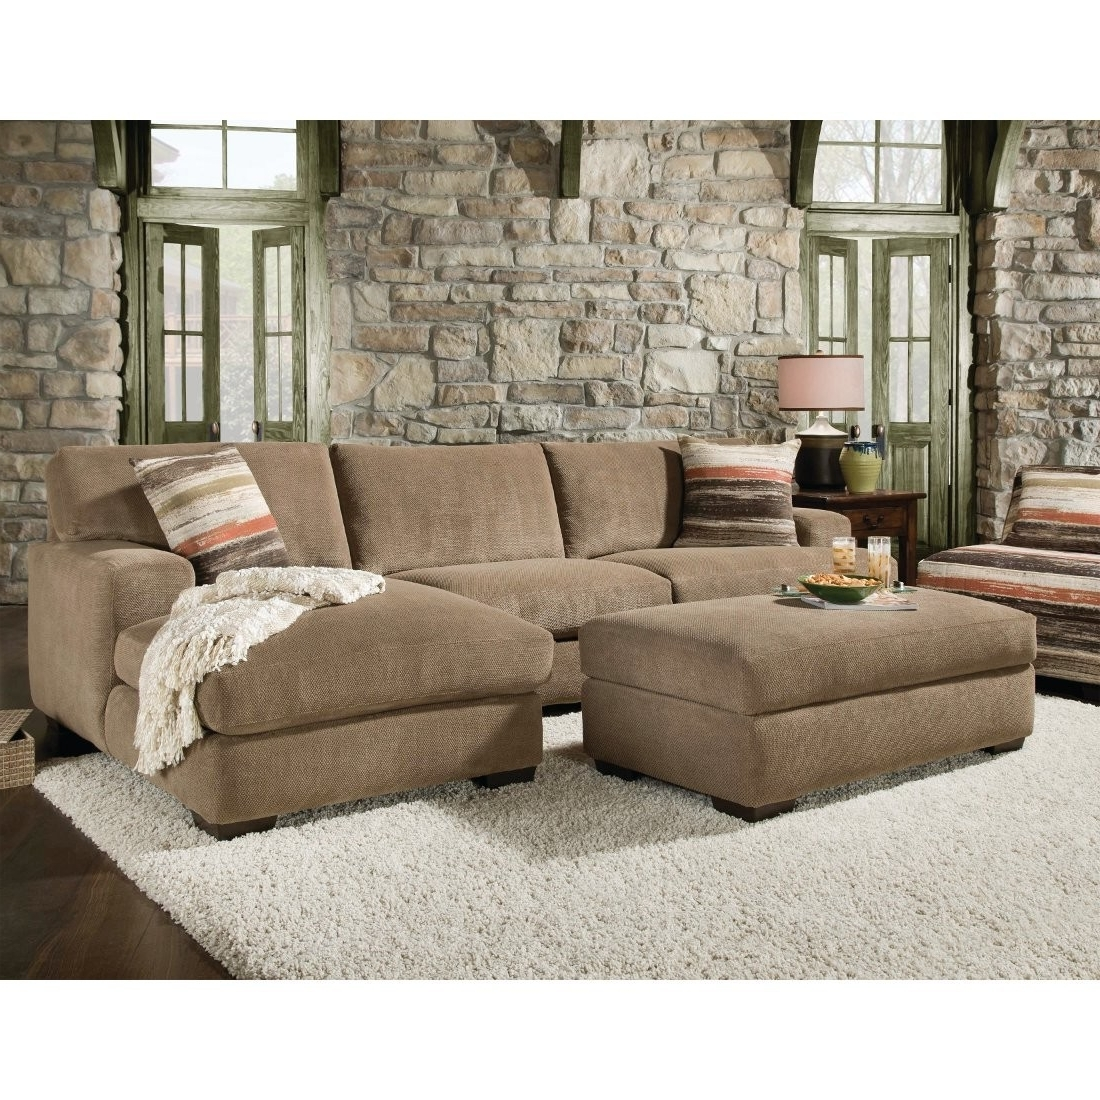 Sofa : Extra Large Sectionals With Chaise Deep Sofas Deep Couches For Well Known Sectional Sofas With Chaise (View 3 of 20)